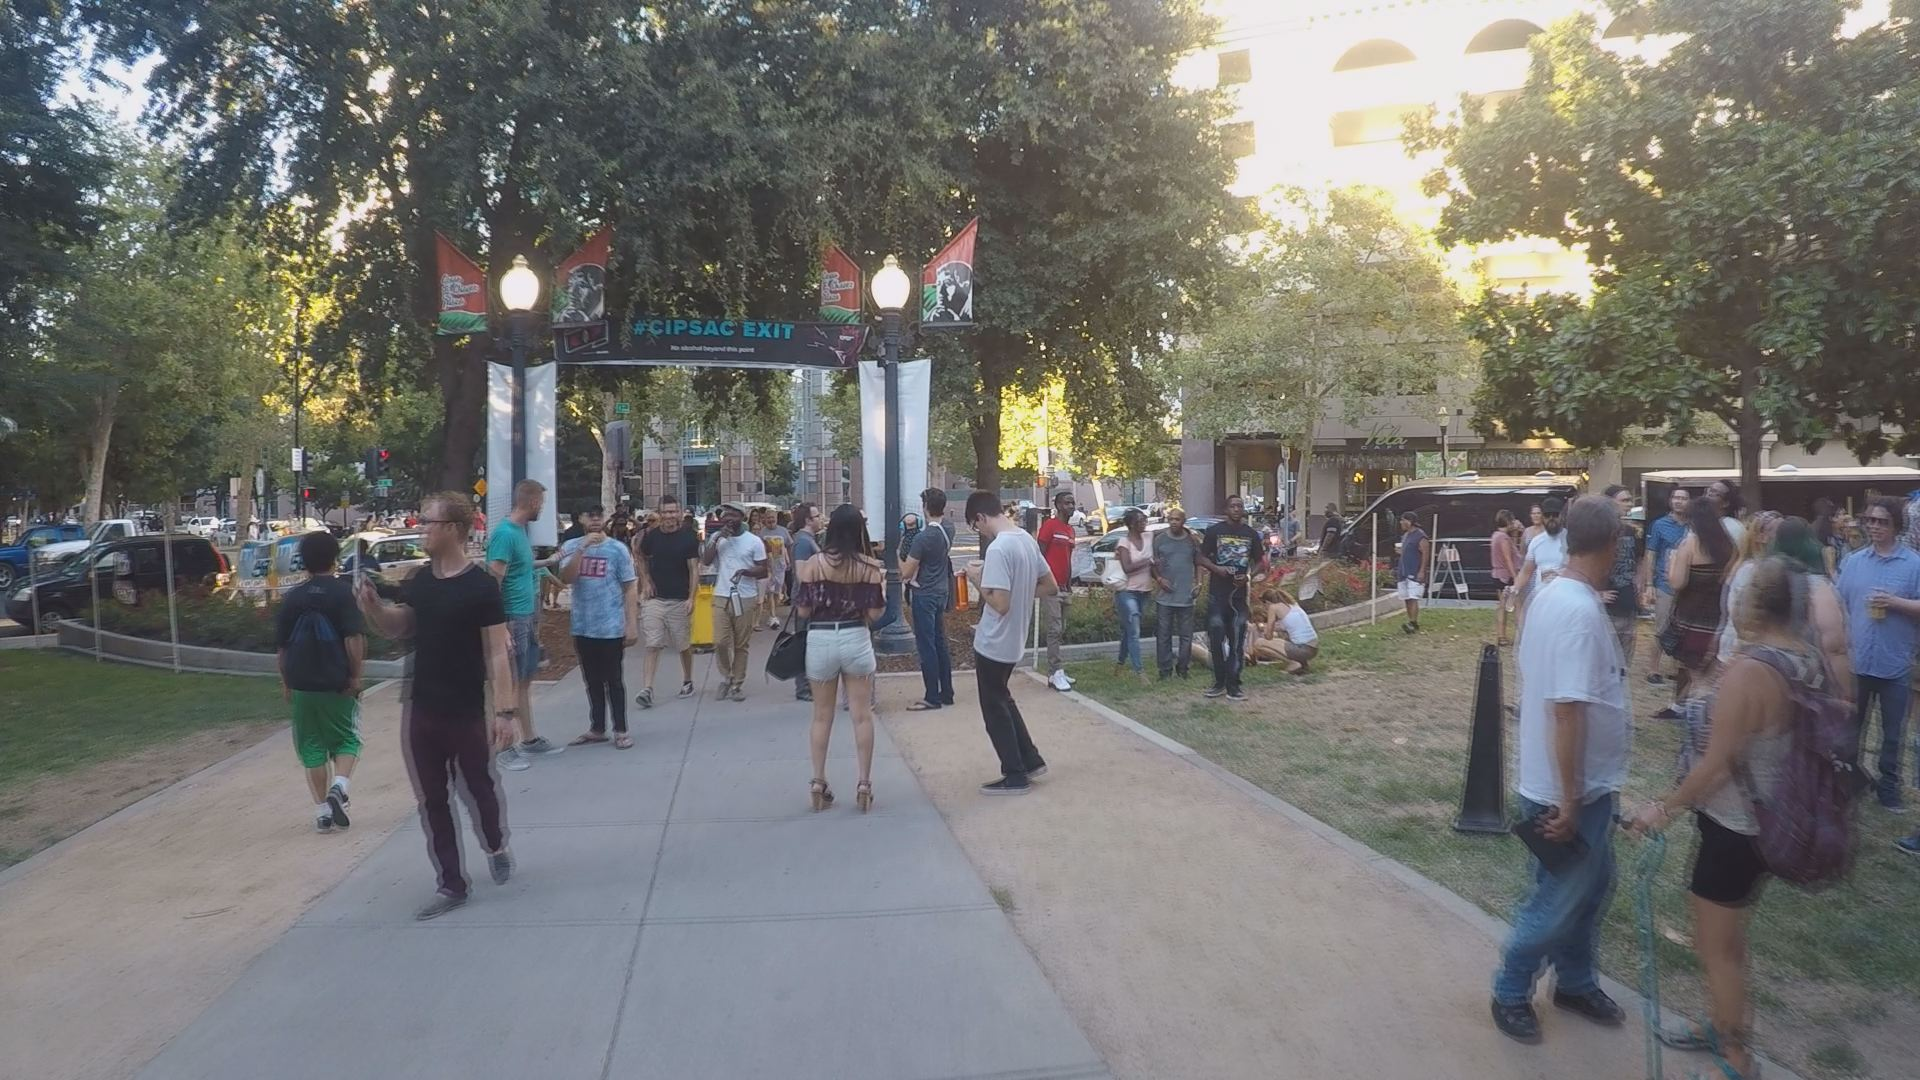 Record breaking year for Sacramento s Concerts in the Park